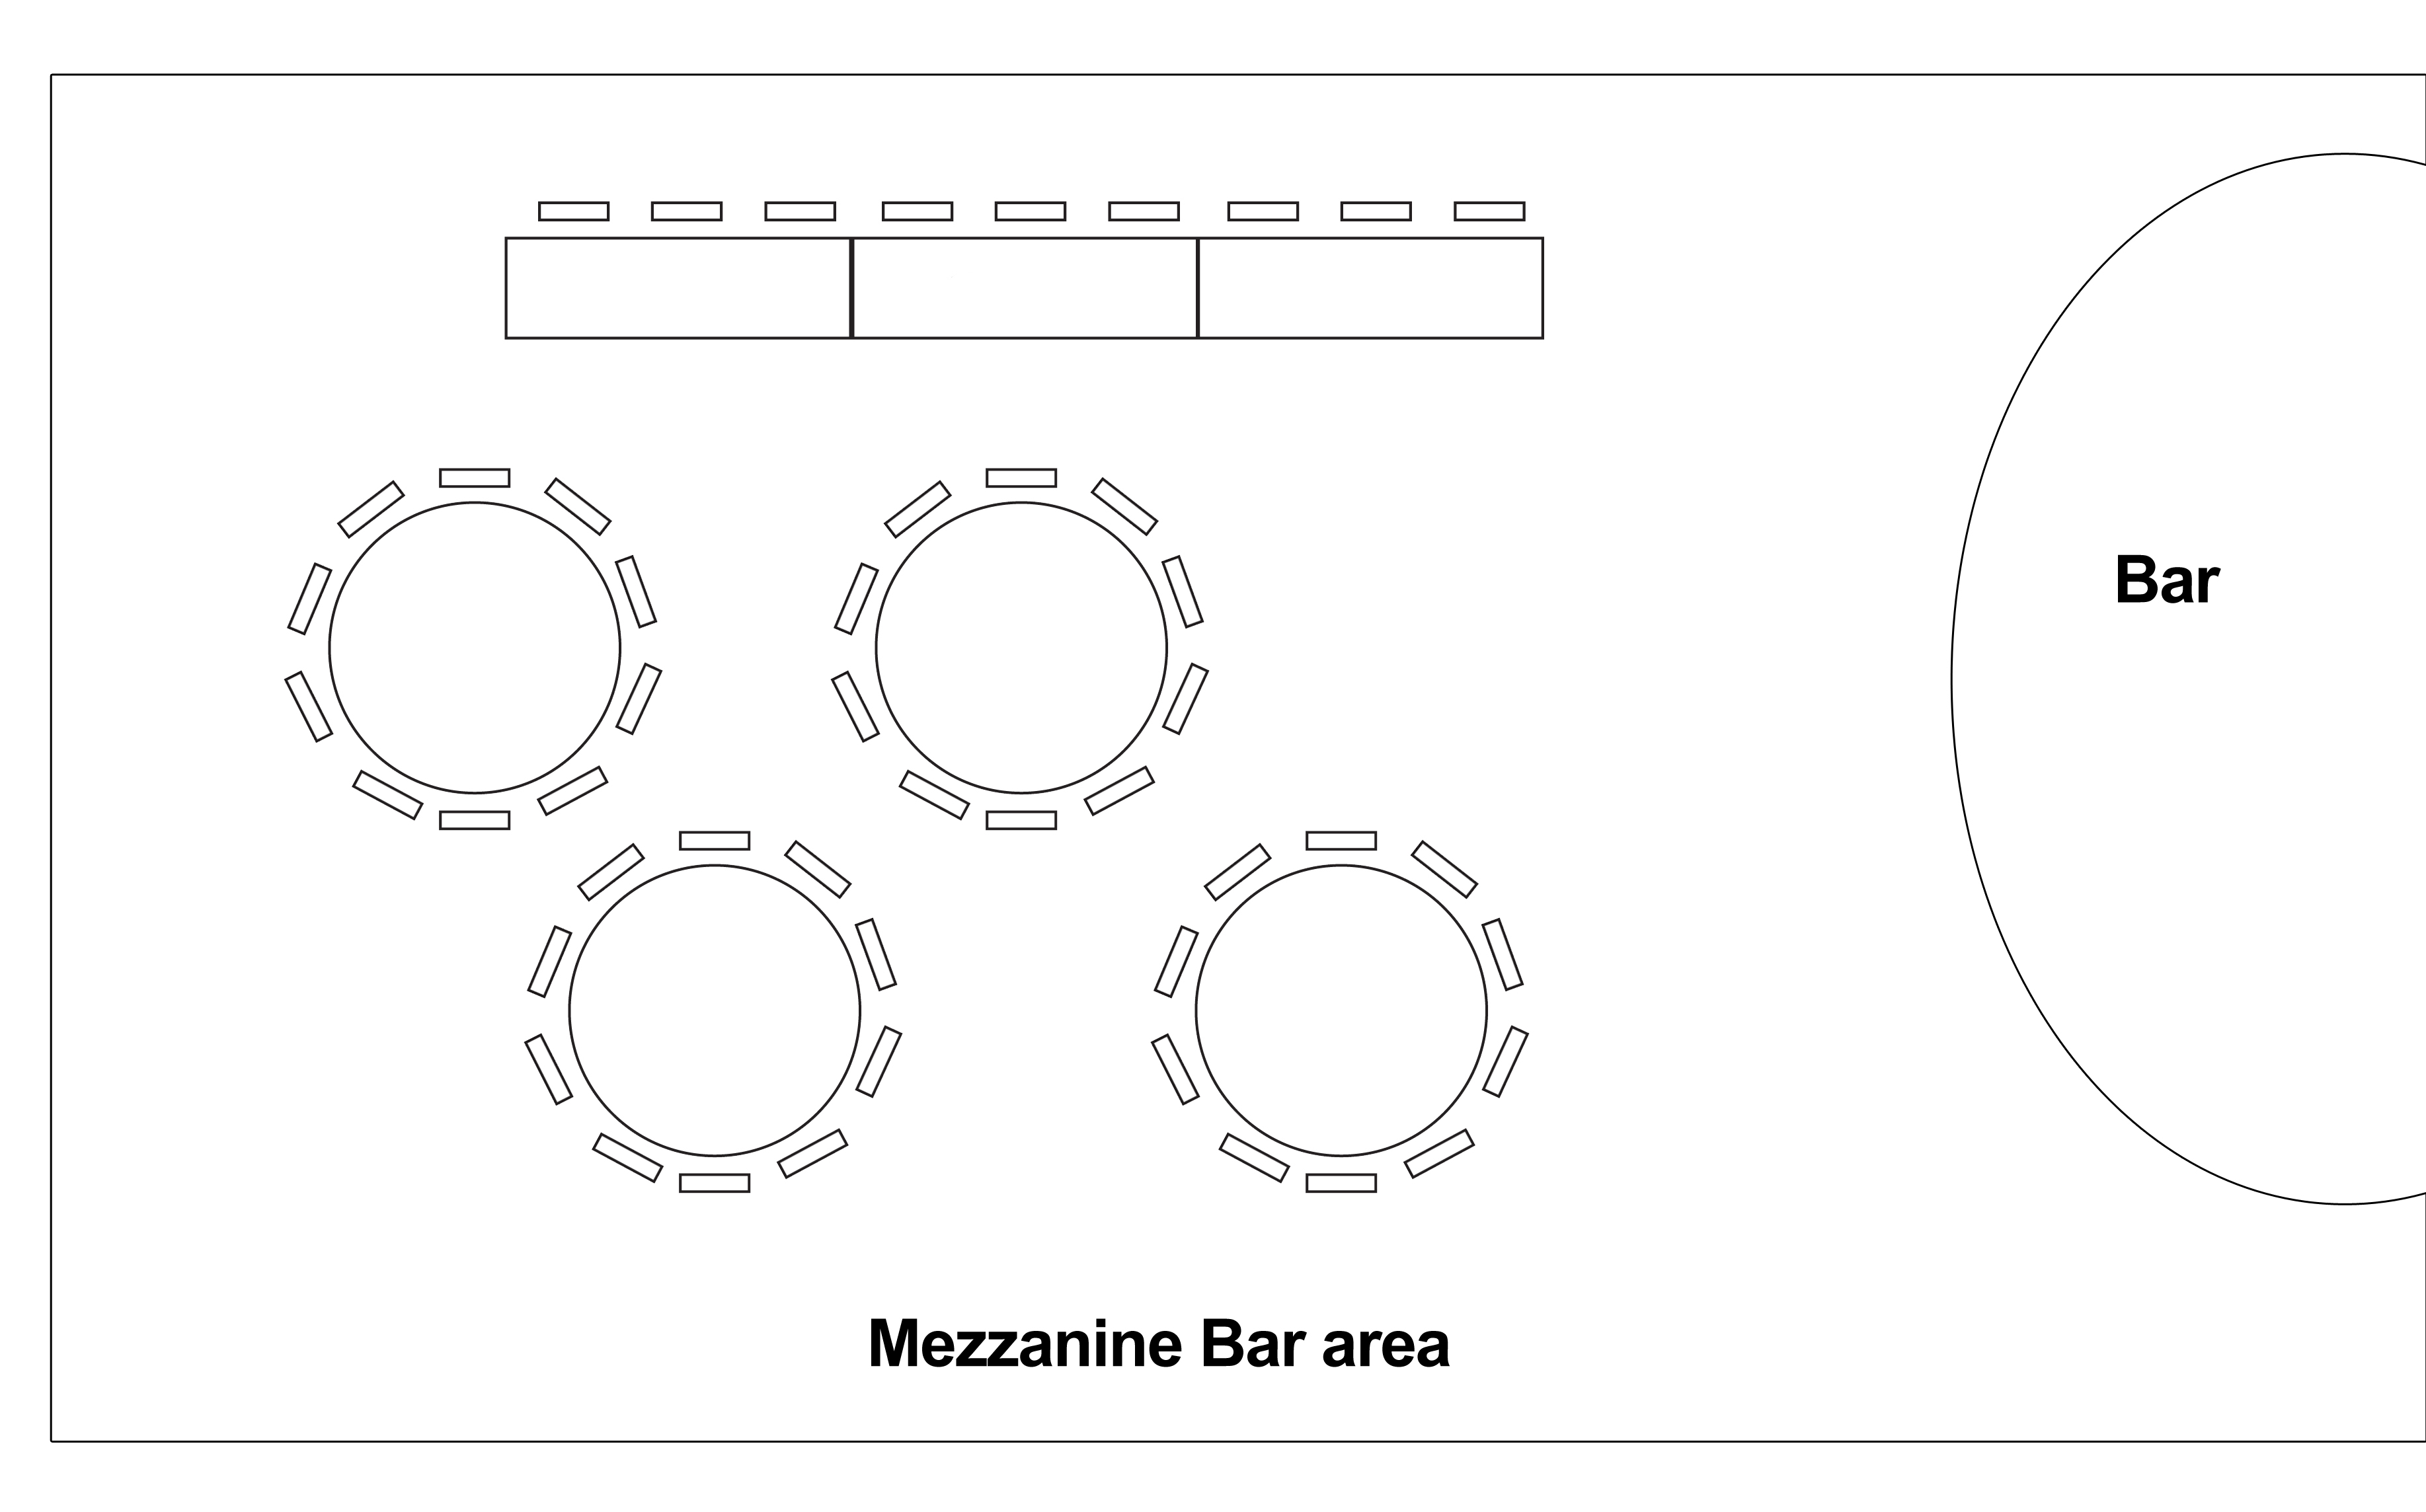 Rutherglen Town Hall Mezzanine Bar area wedding table layout.